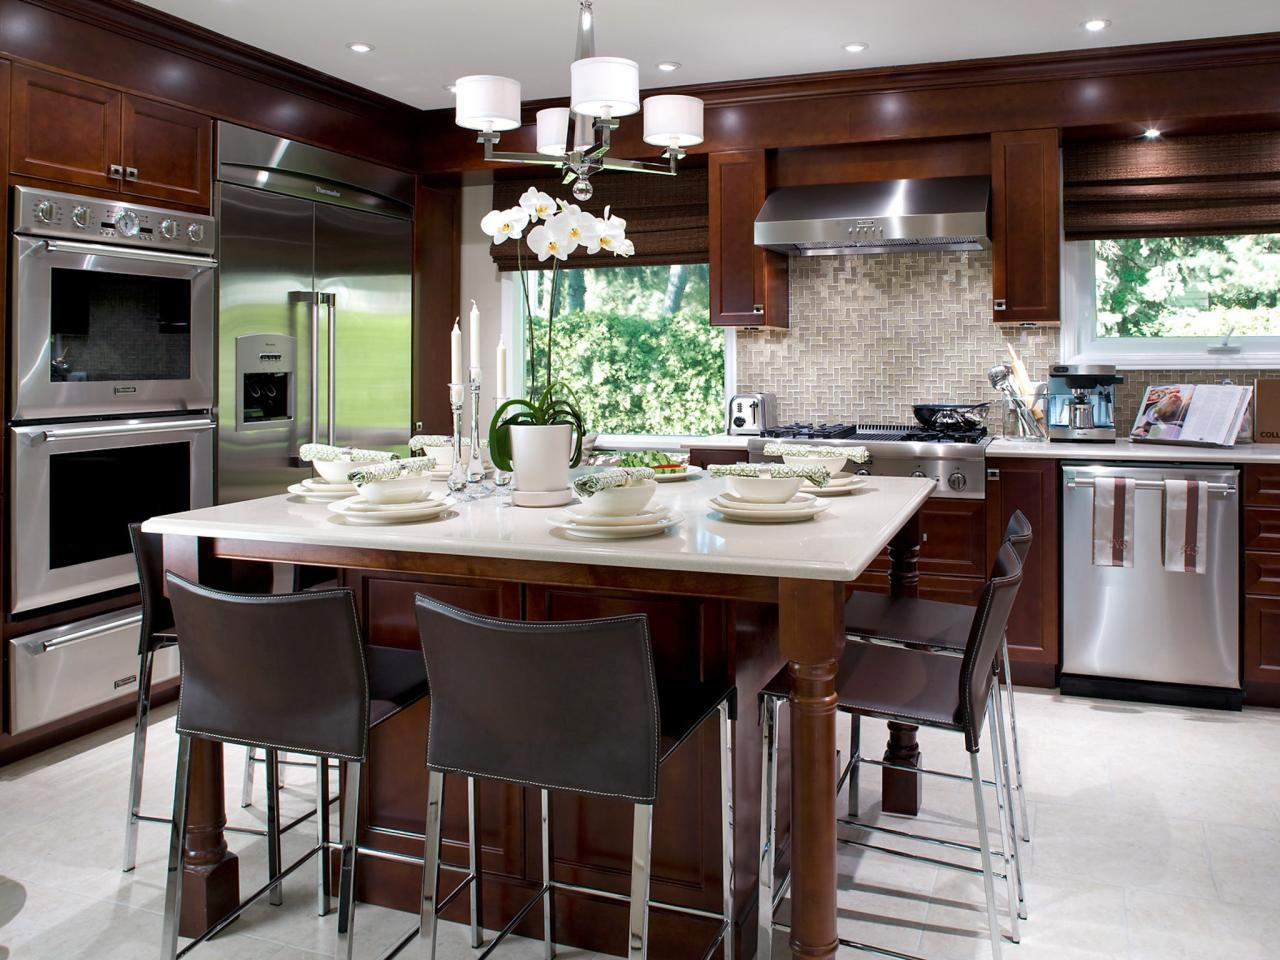 Beautiful Kitchen Designs Gallery European Kitchen Design Pictures Ideas & Tips From Hgtv  Hgtv